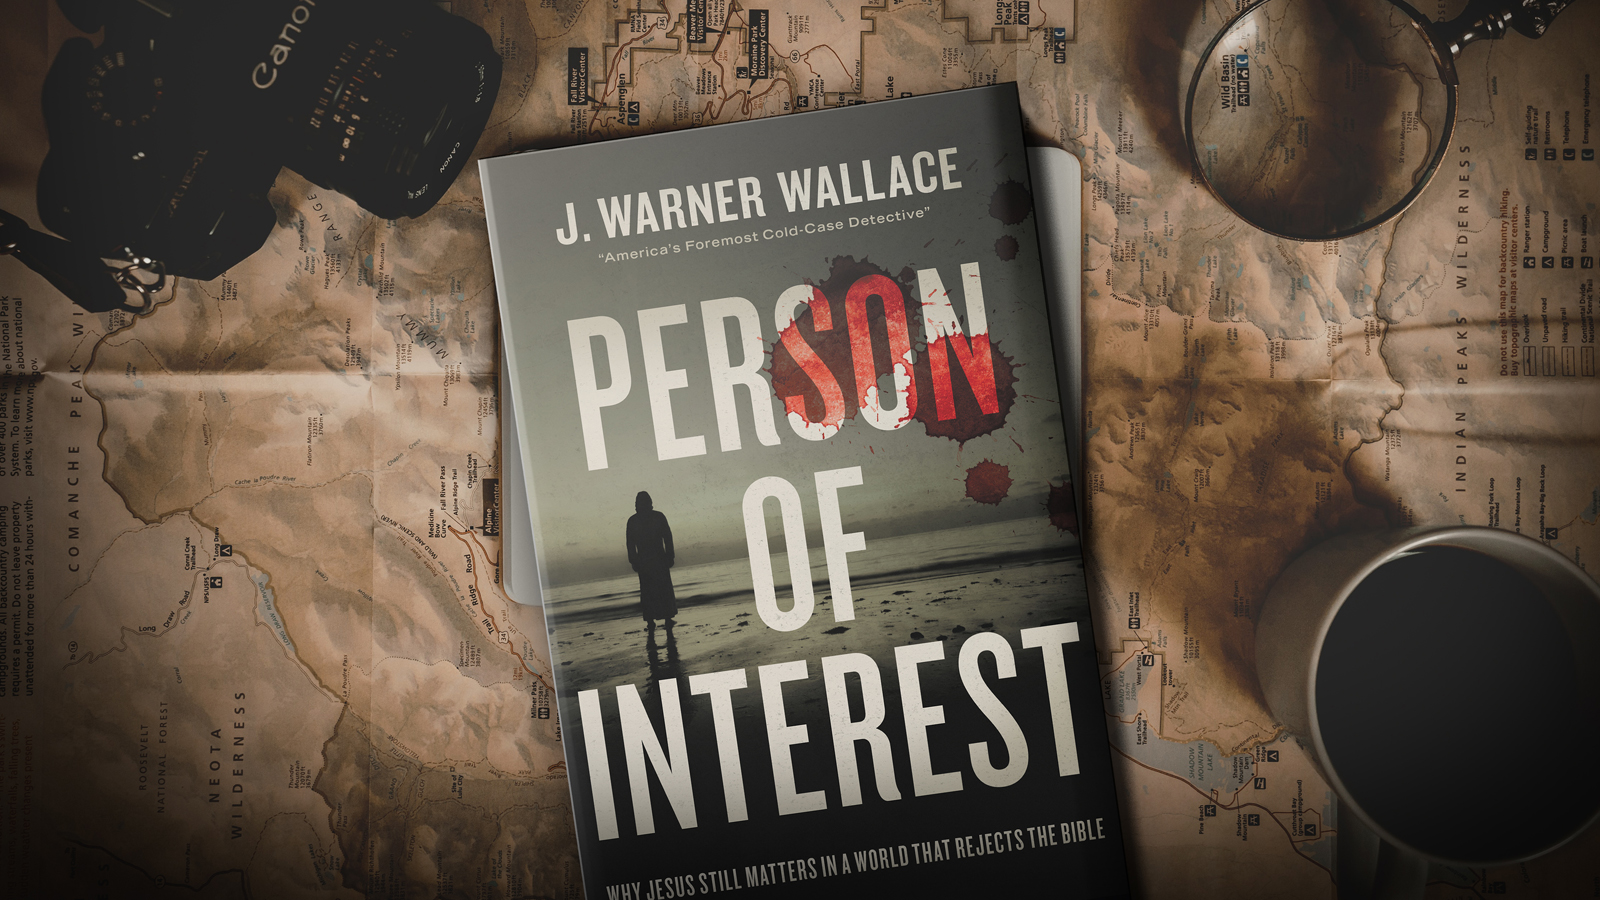 Person of Interest Book Launch Party with Alisa Childers